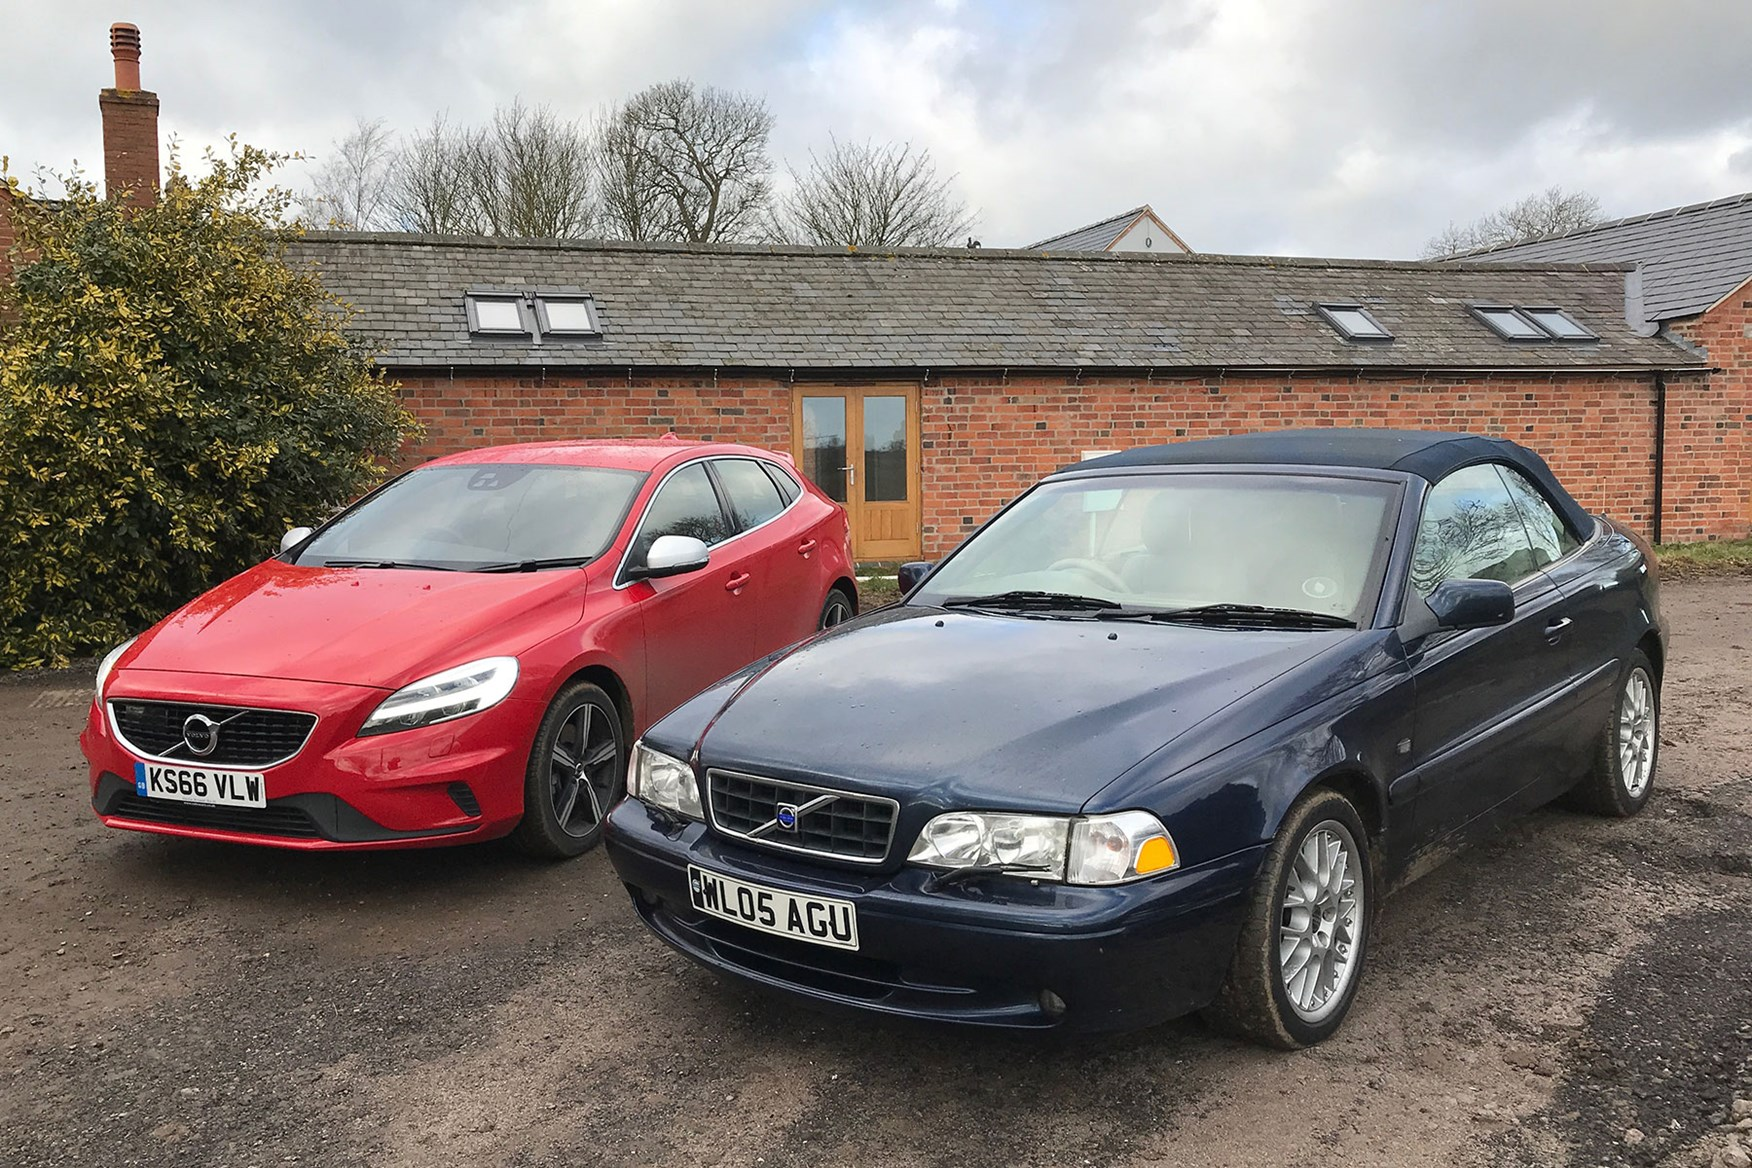 your gives cheap volvo high repaired quality info with car usa service parts peace has us compatible are knowing genuine of you been total using all owner by that mind own